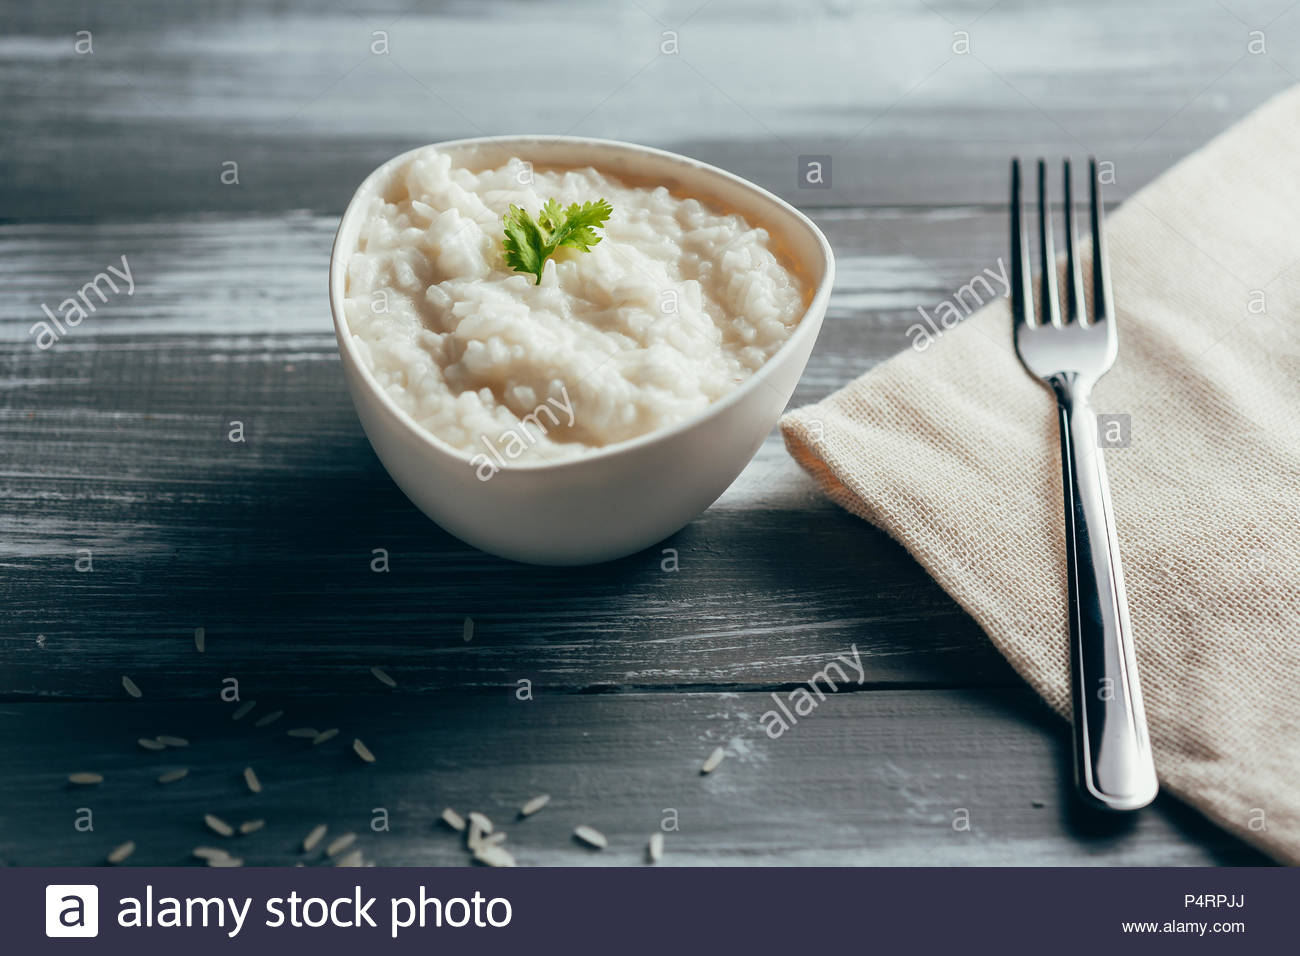 Arroz de leite - rice with milk - typical salty recipe from the Brazilian Northeast - Stock Image